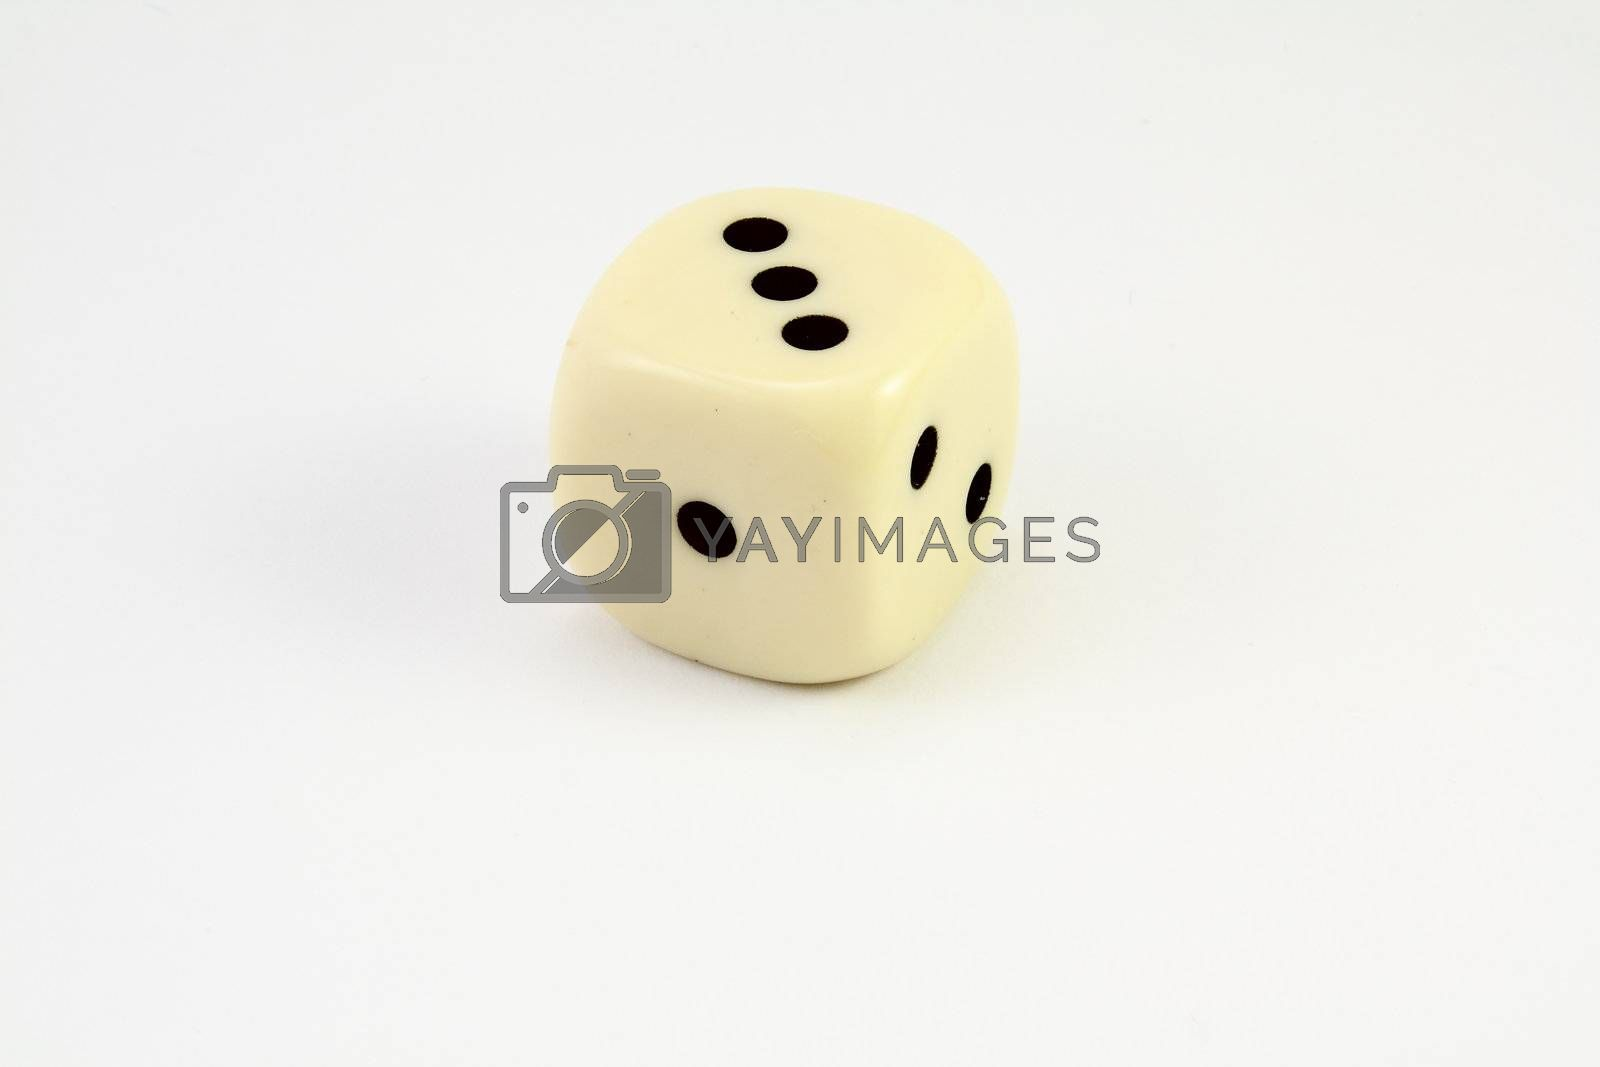 Royalty free image of Dice by Jova